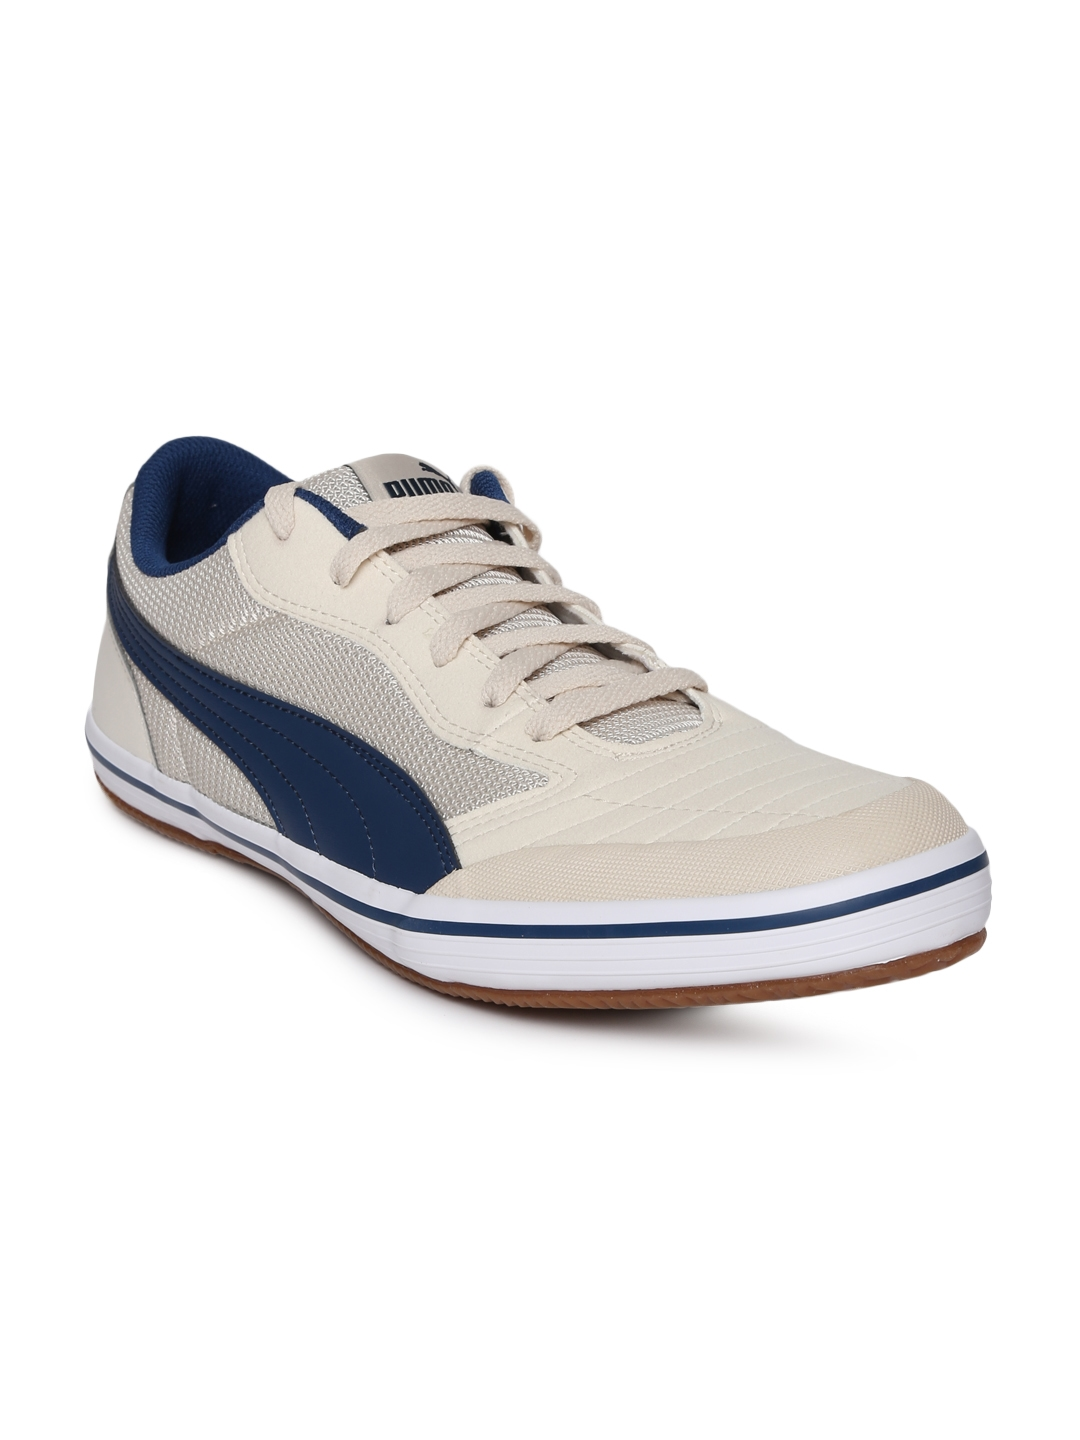 Buy Puma Unisex Beige Astro Sala Sneakers - Casual Shoes for Unisex ... a4f7eb4bf359